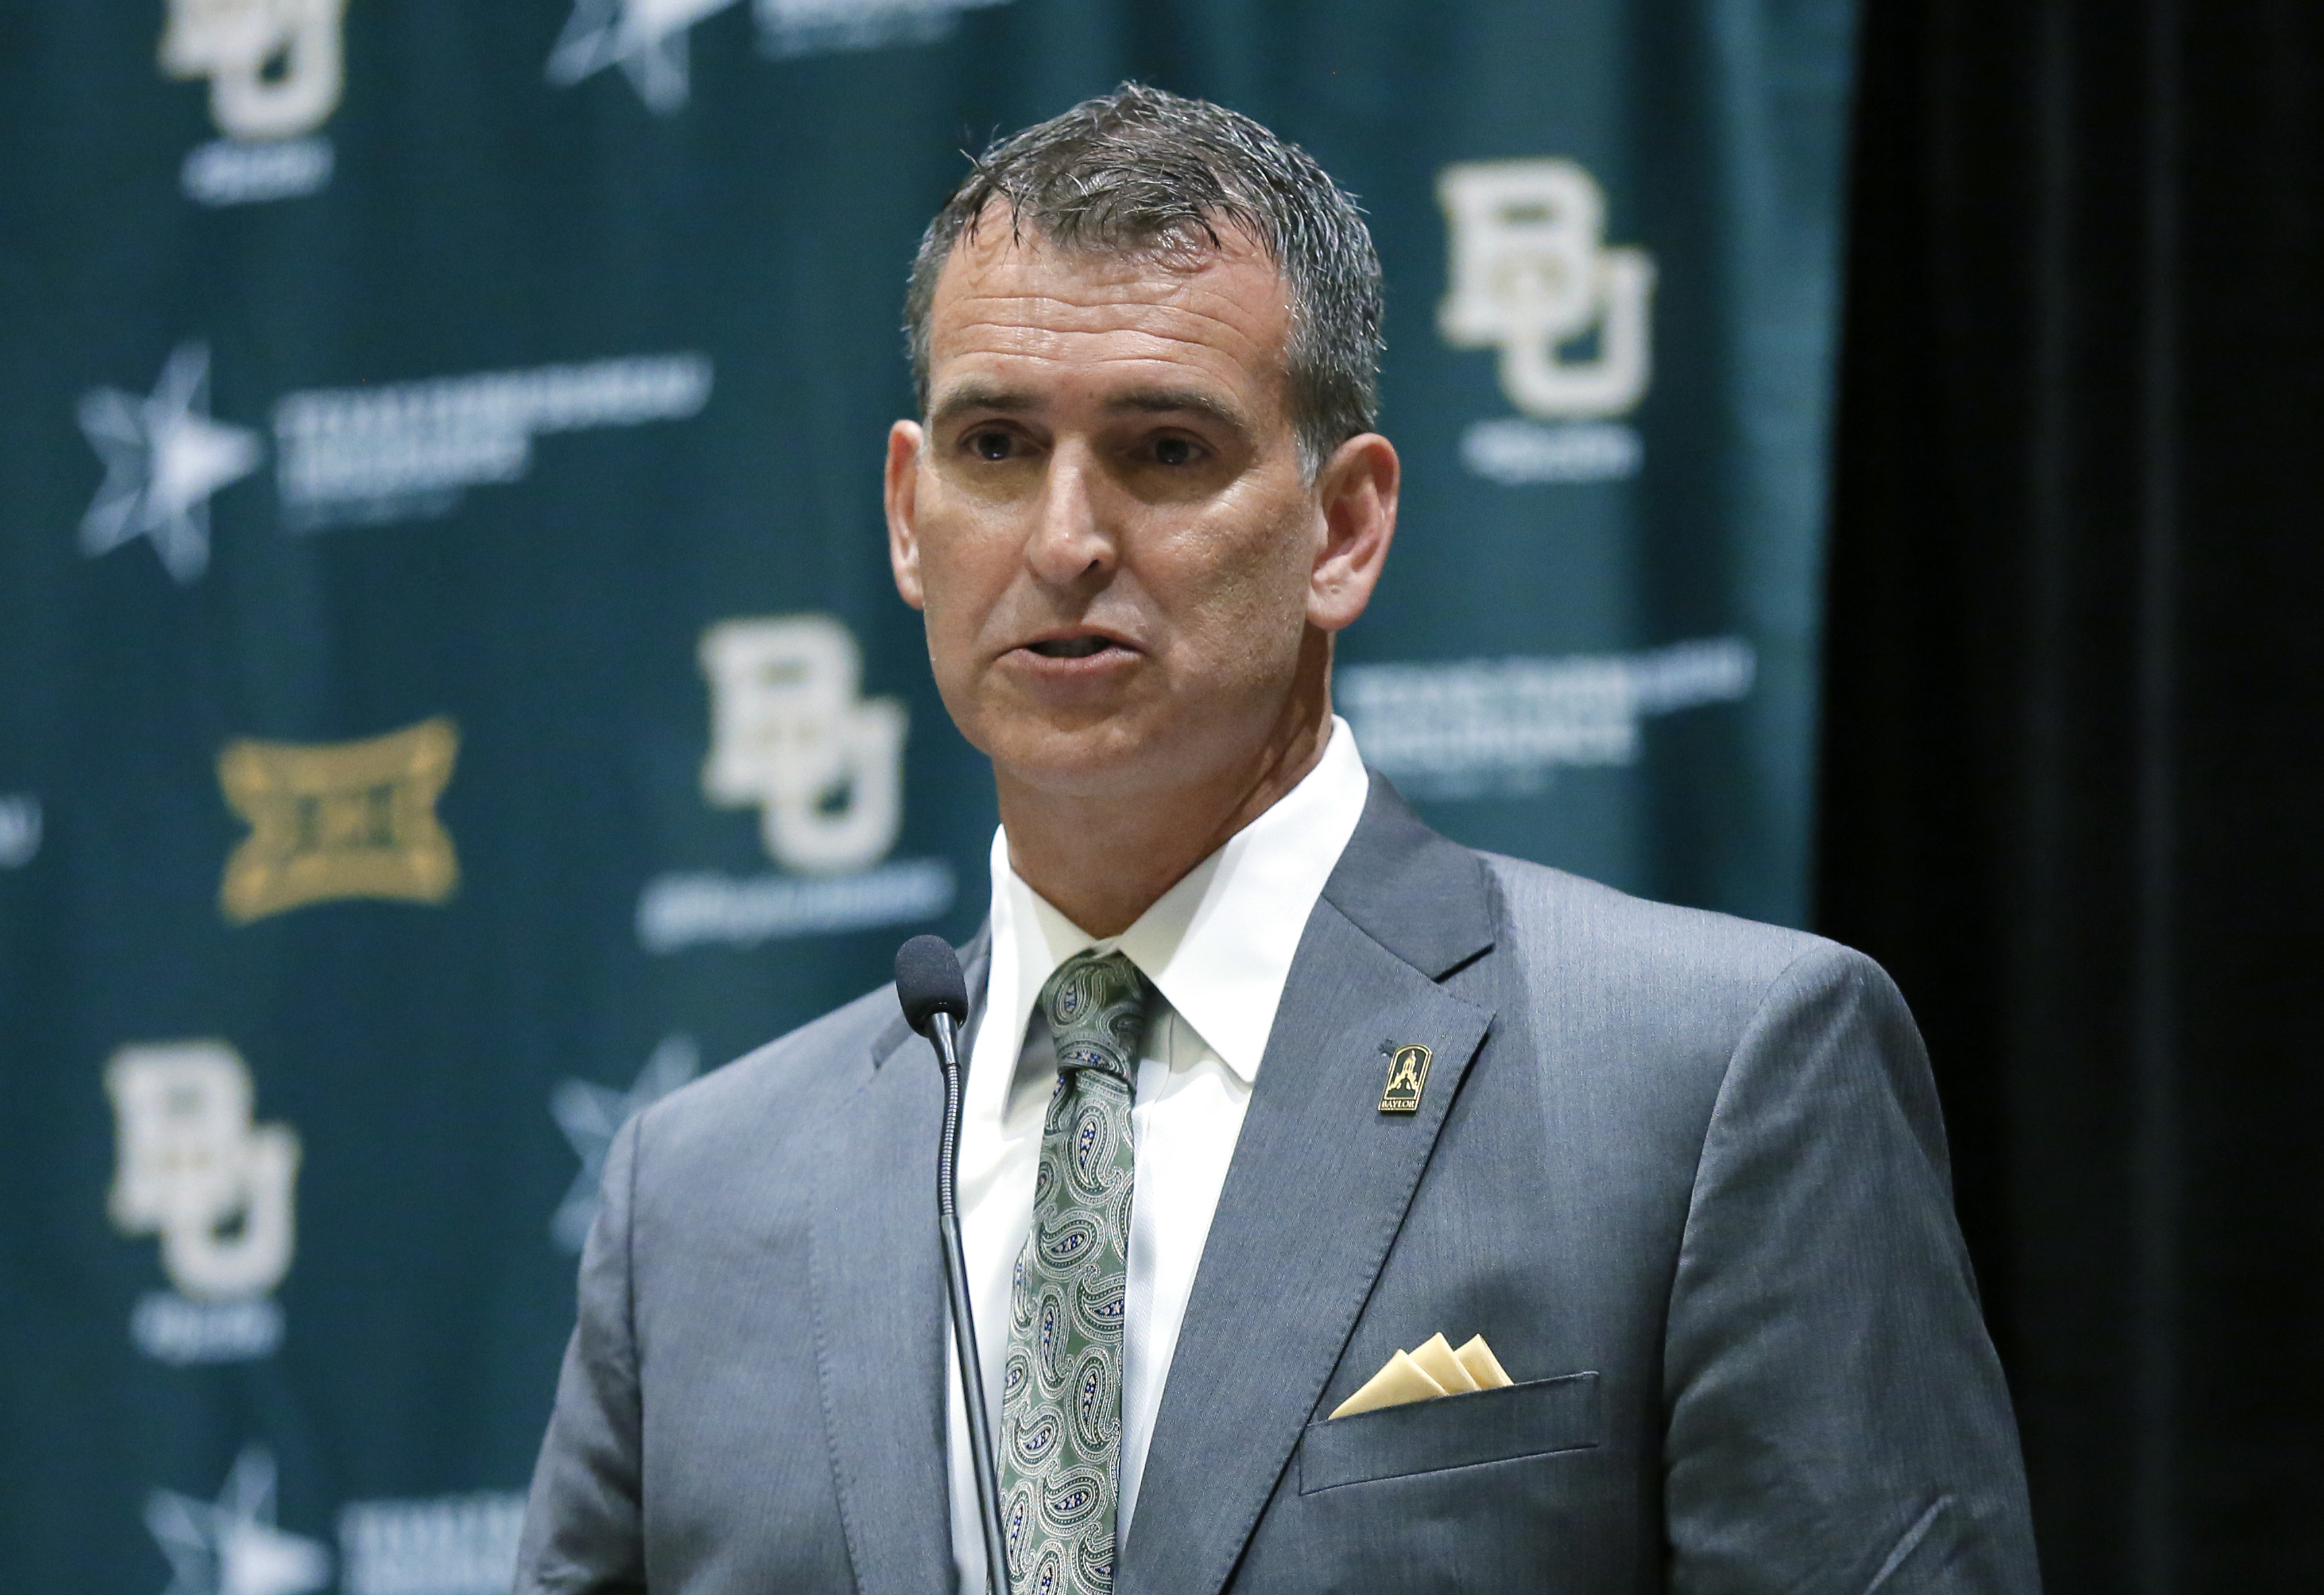 Baylor athetlic director Mack Rhoades, responds to questions during a news conference at Big 12 media days, Monday, July 18, 2016, in Dallas. (AP Photo/Tony Gutierrez)